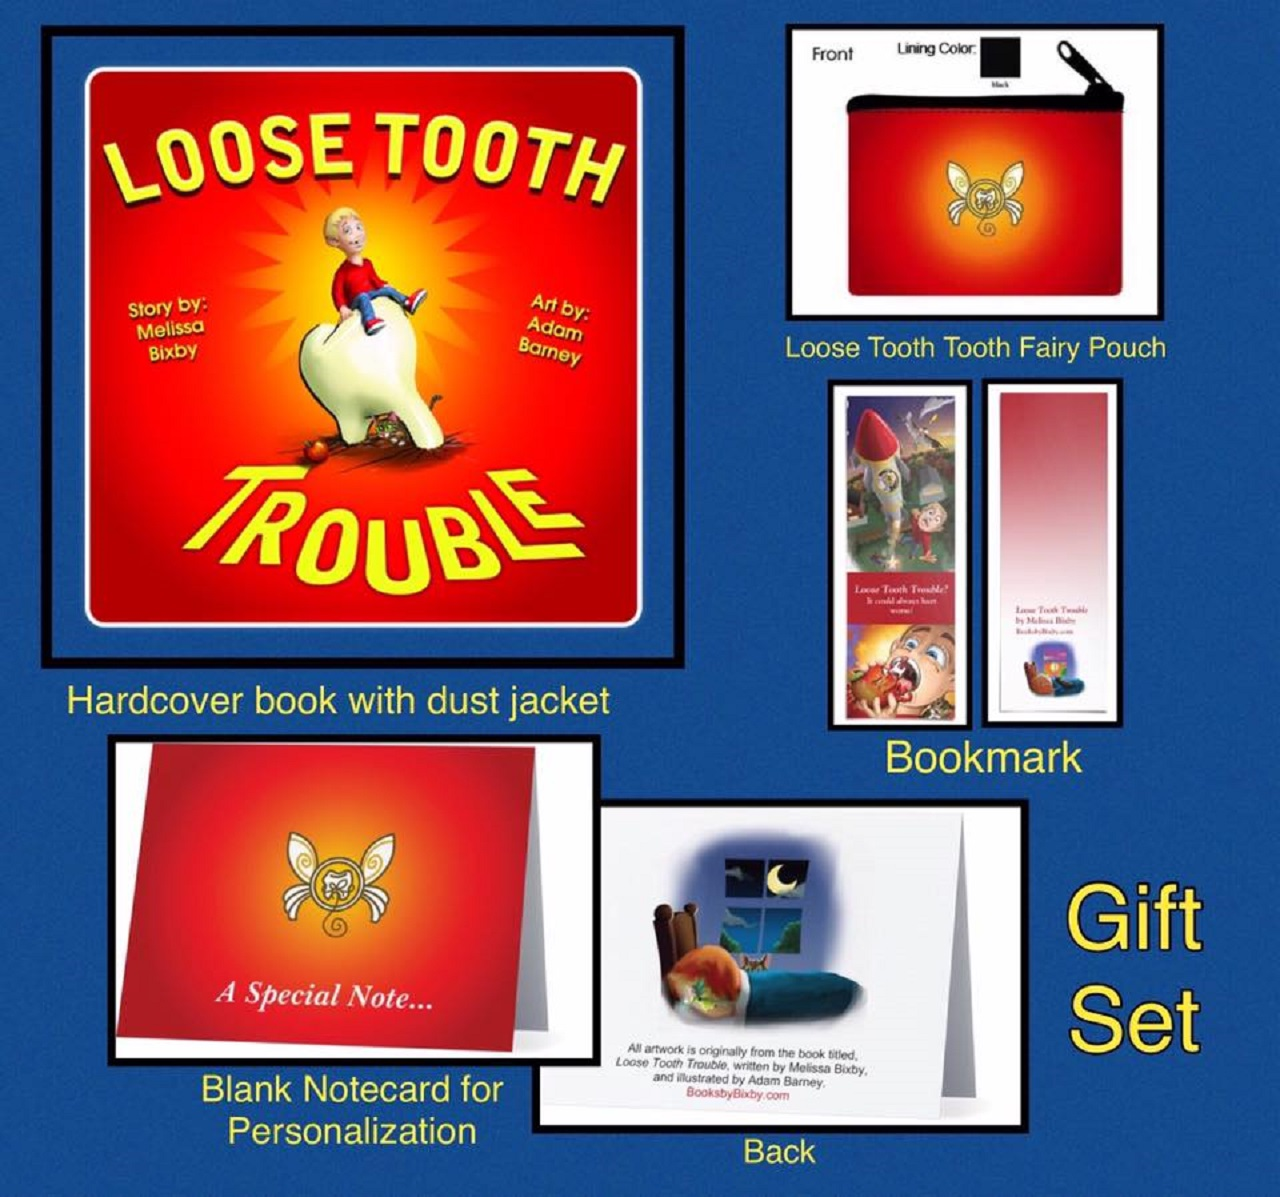 Loose Tooth-Tooth Fairy Gift Set!